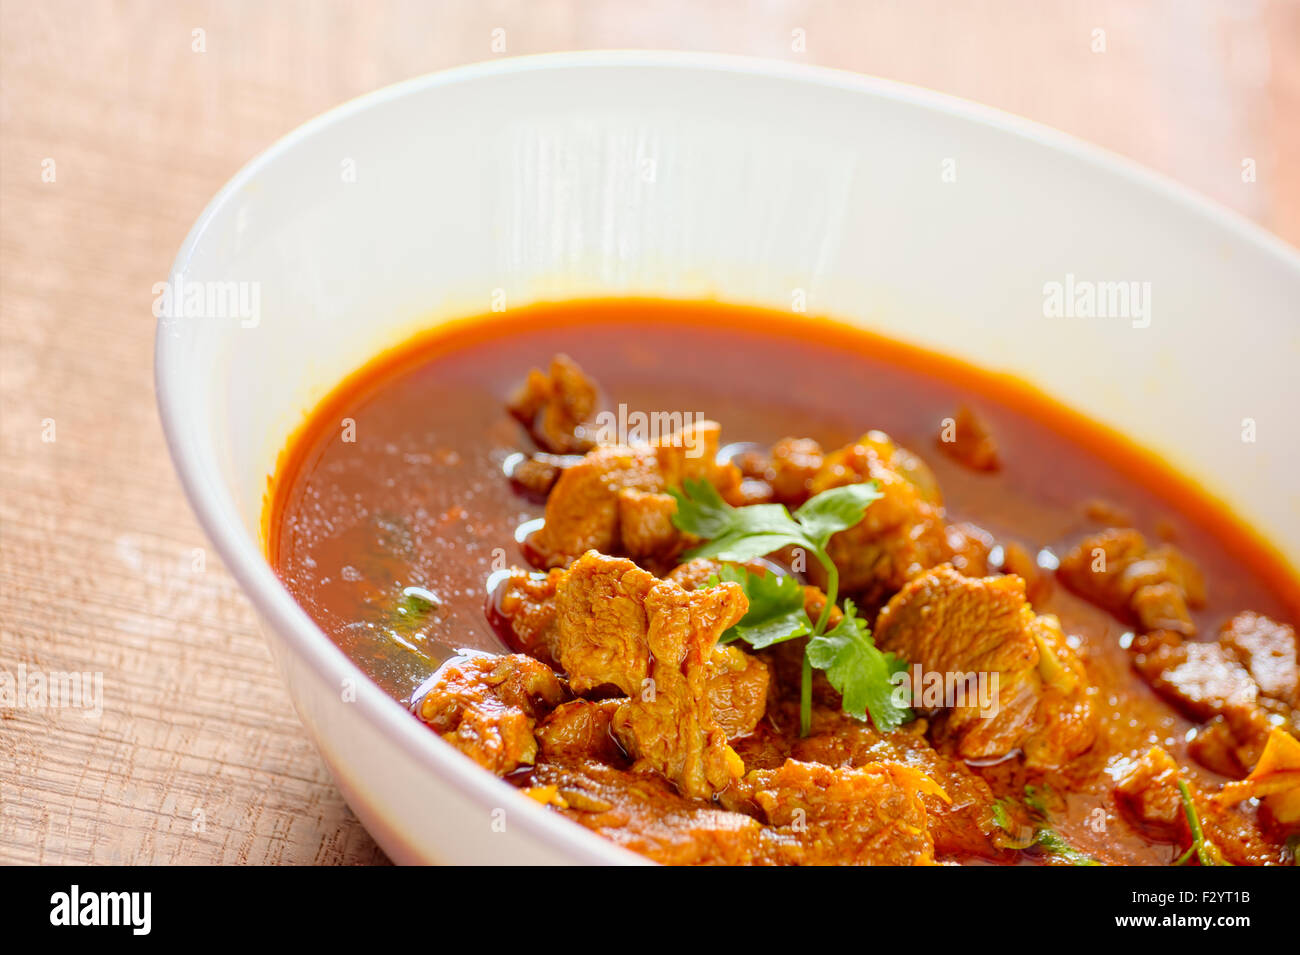 mutton rogan josh, mutton curry, Indian cuisine - Stock Image